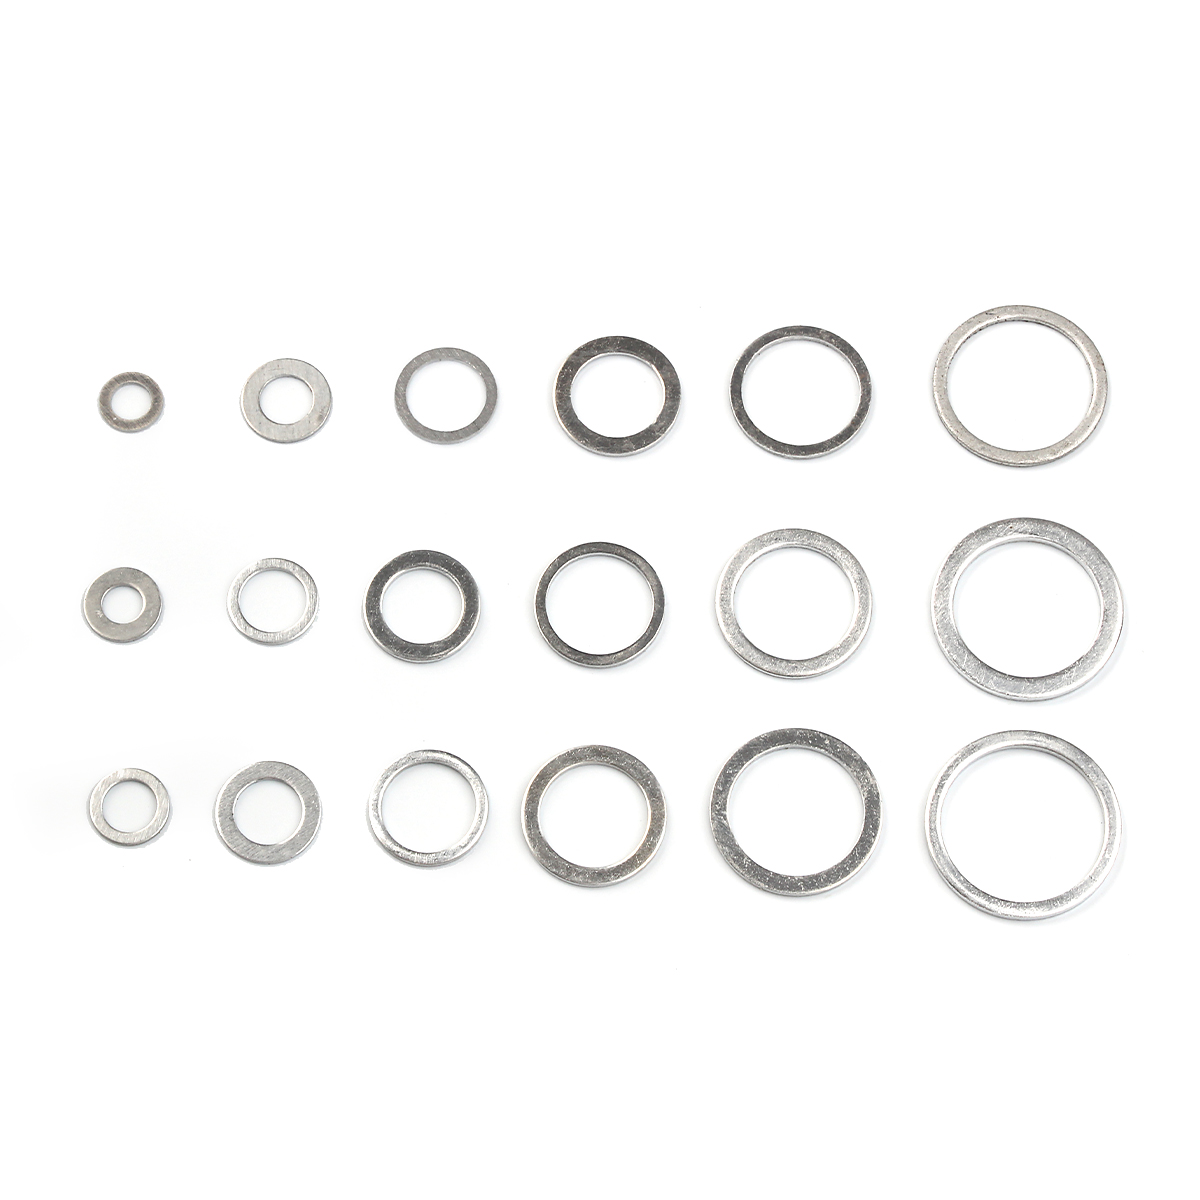 Image 3 - 450Pcs Gaskets Washers Gasket Aluminum Flat Metal Washer Gasket Assorted Aluminum Sealing Rings set With Box-in Washers from Home Improvement